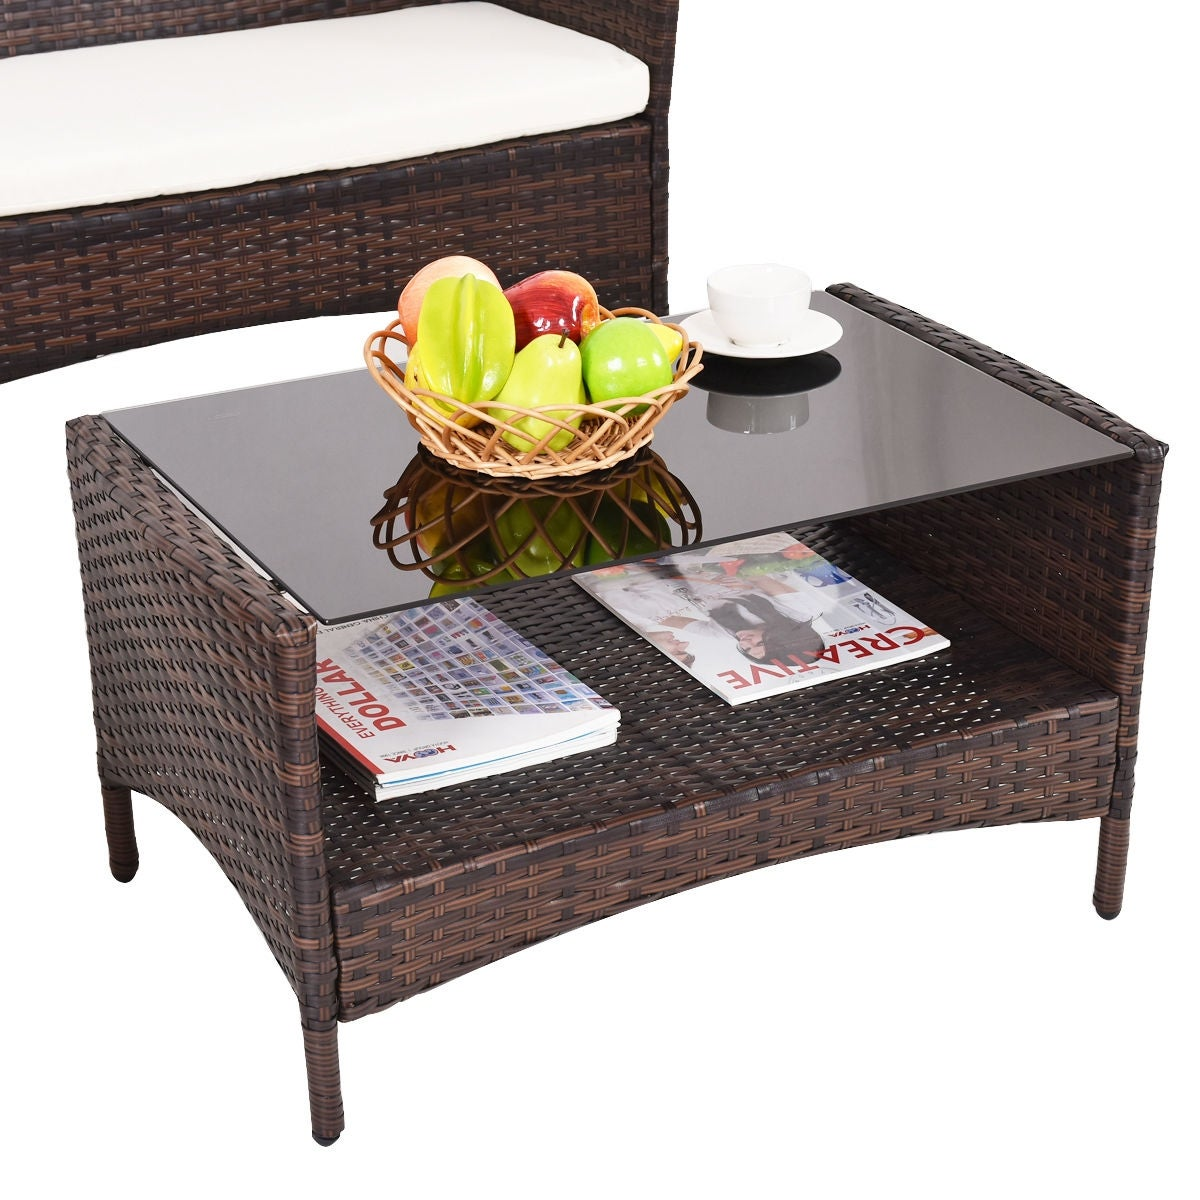 Costway 4 Pcs Outdoor Patio Rattan Furniture Set Table Shelf Sofa W Beige Cushions As Pic Free Shipping Today 16347007